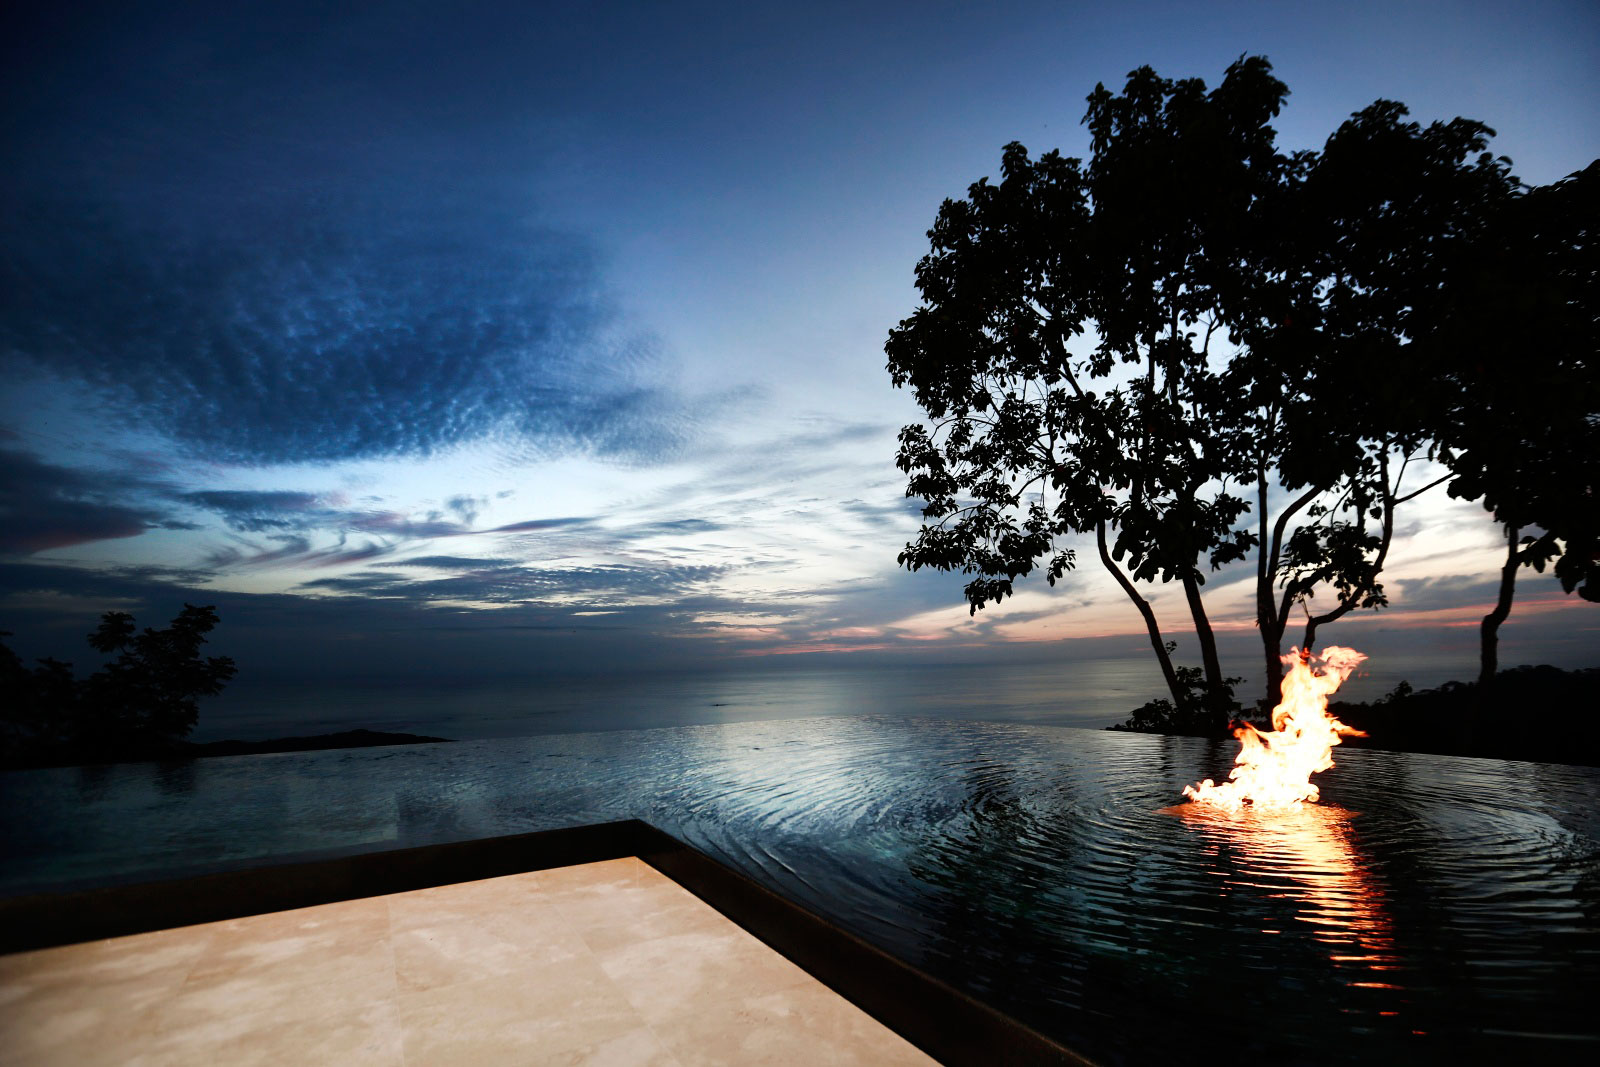 Infinity Pool, Fire Pit, Holiday Villas in Costa Rica